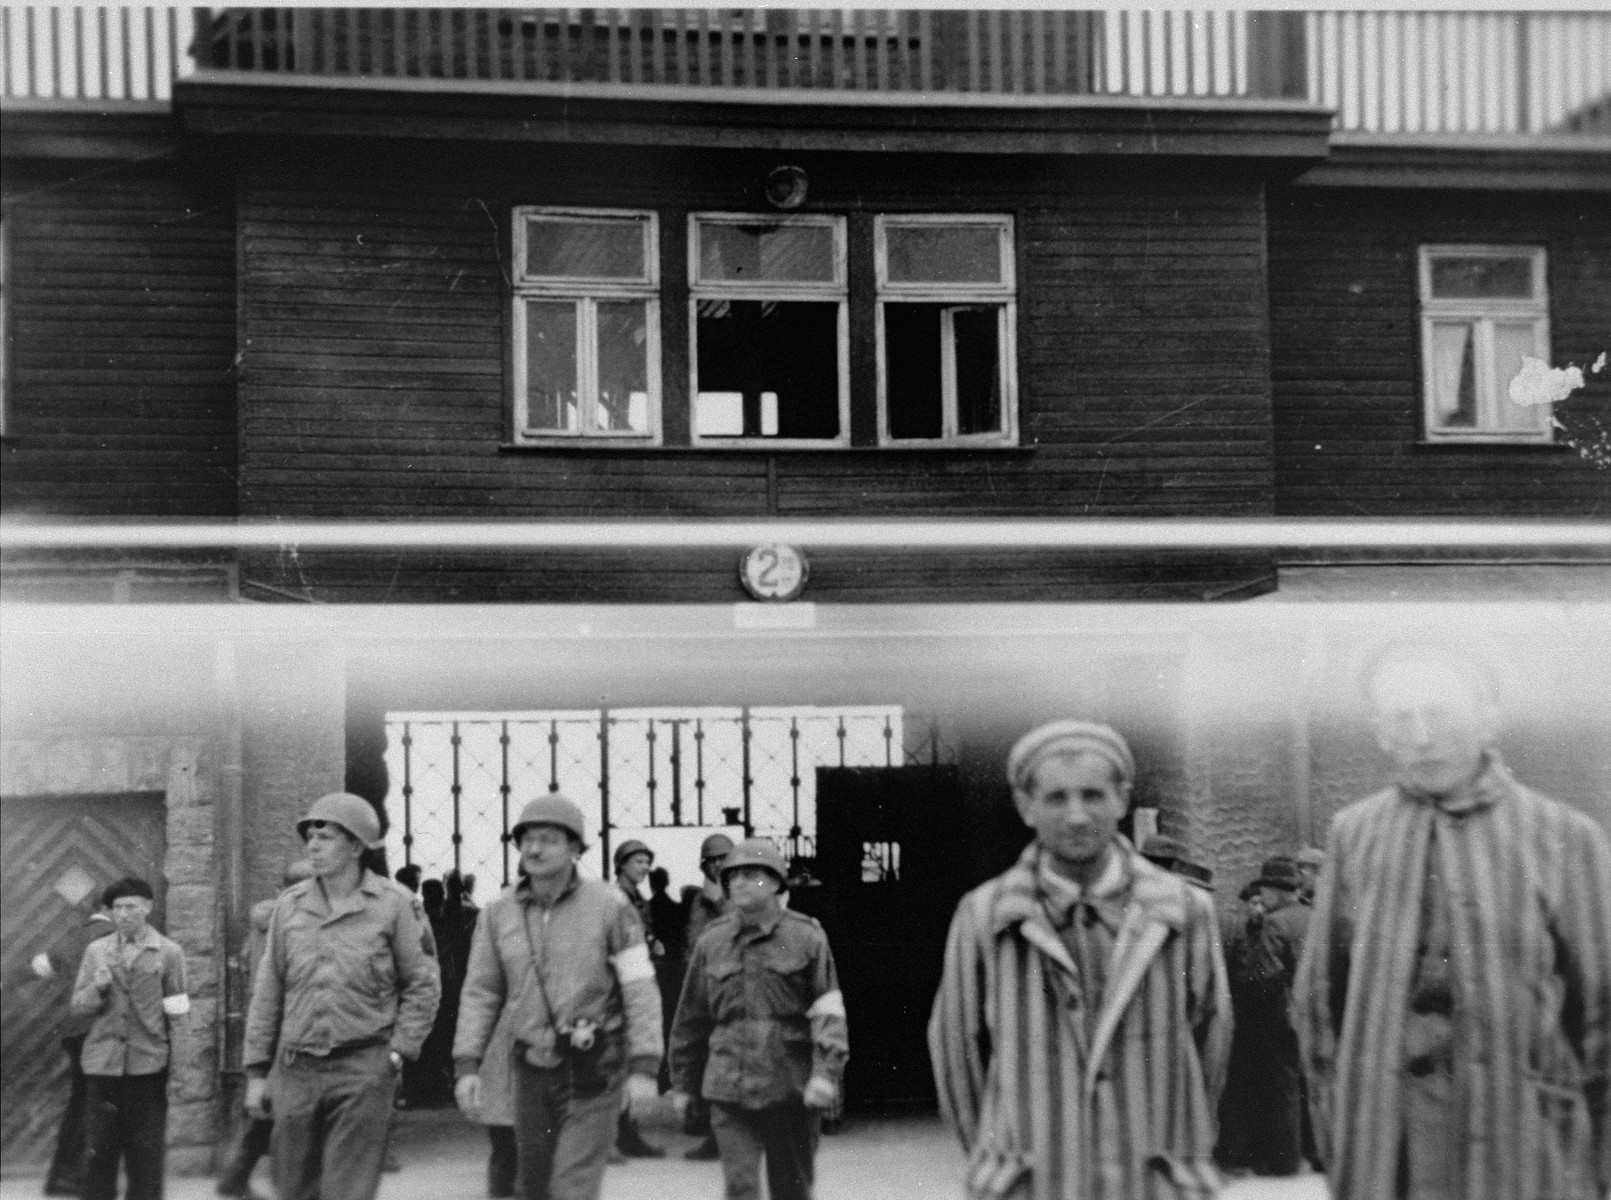 American soldiers and survivors stand by the entrance of Buchenwald.